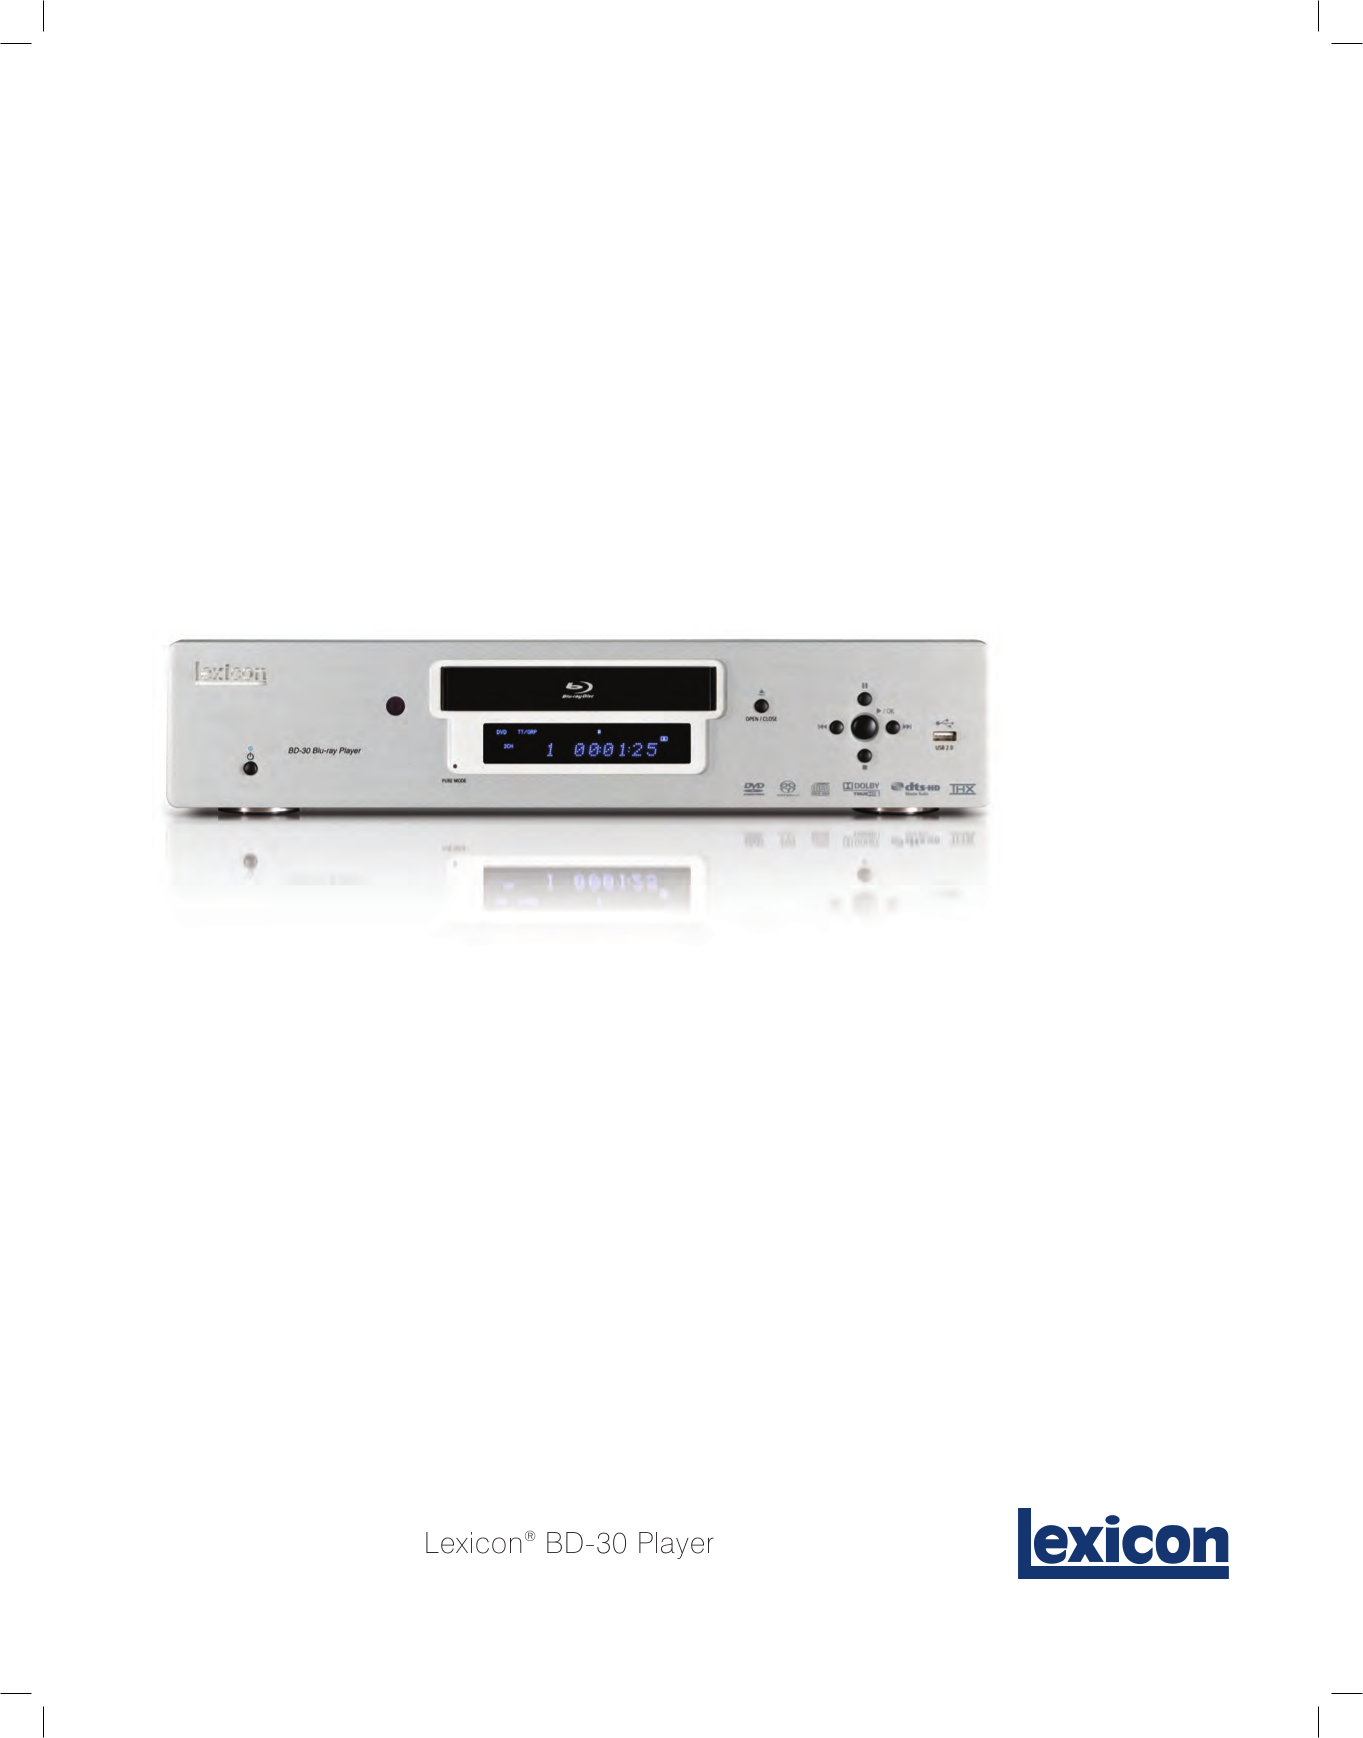 pdf for Lexicon DVD Players RT-20 manual